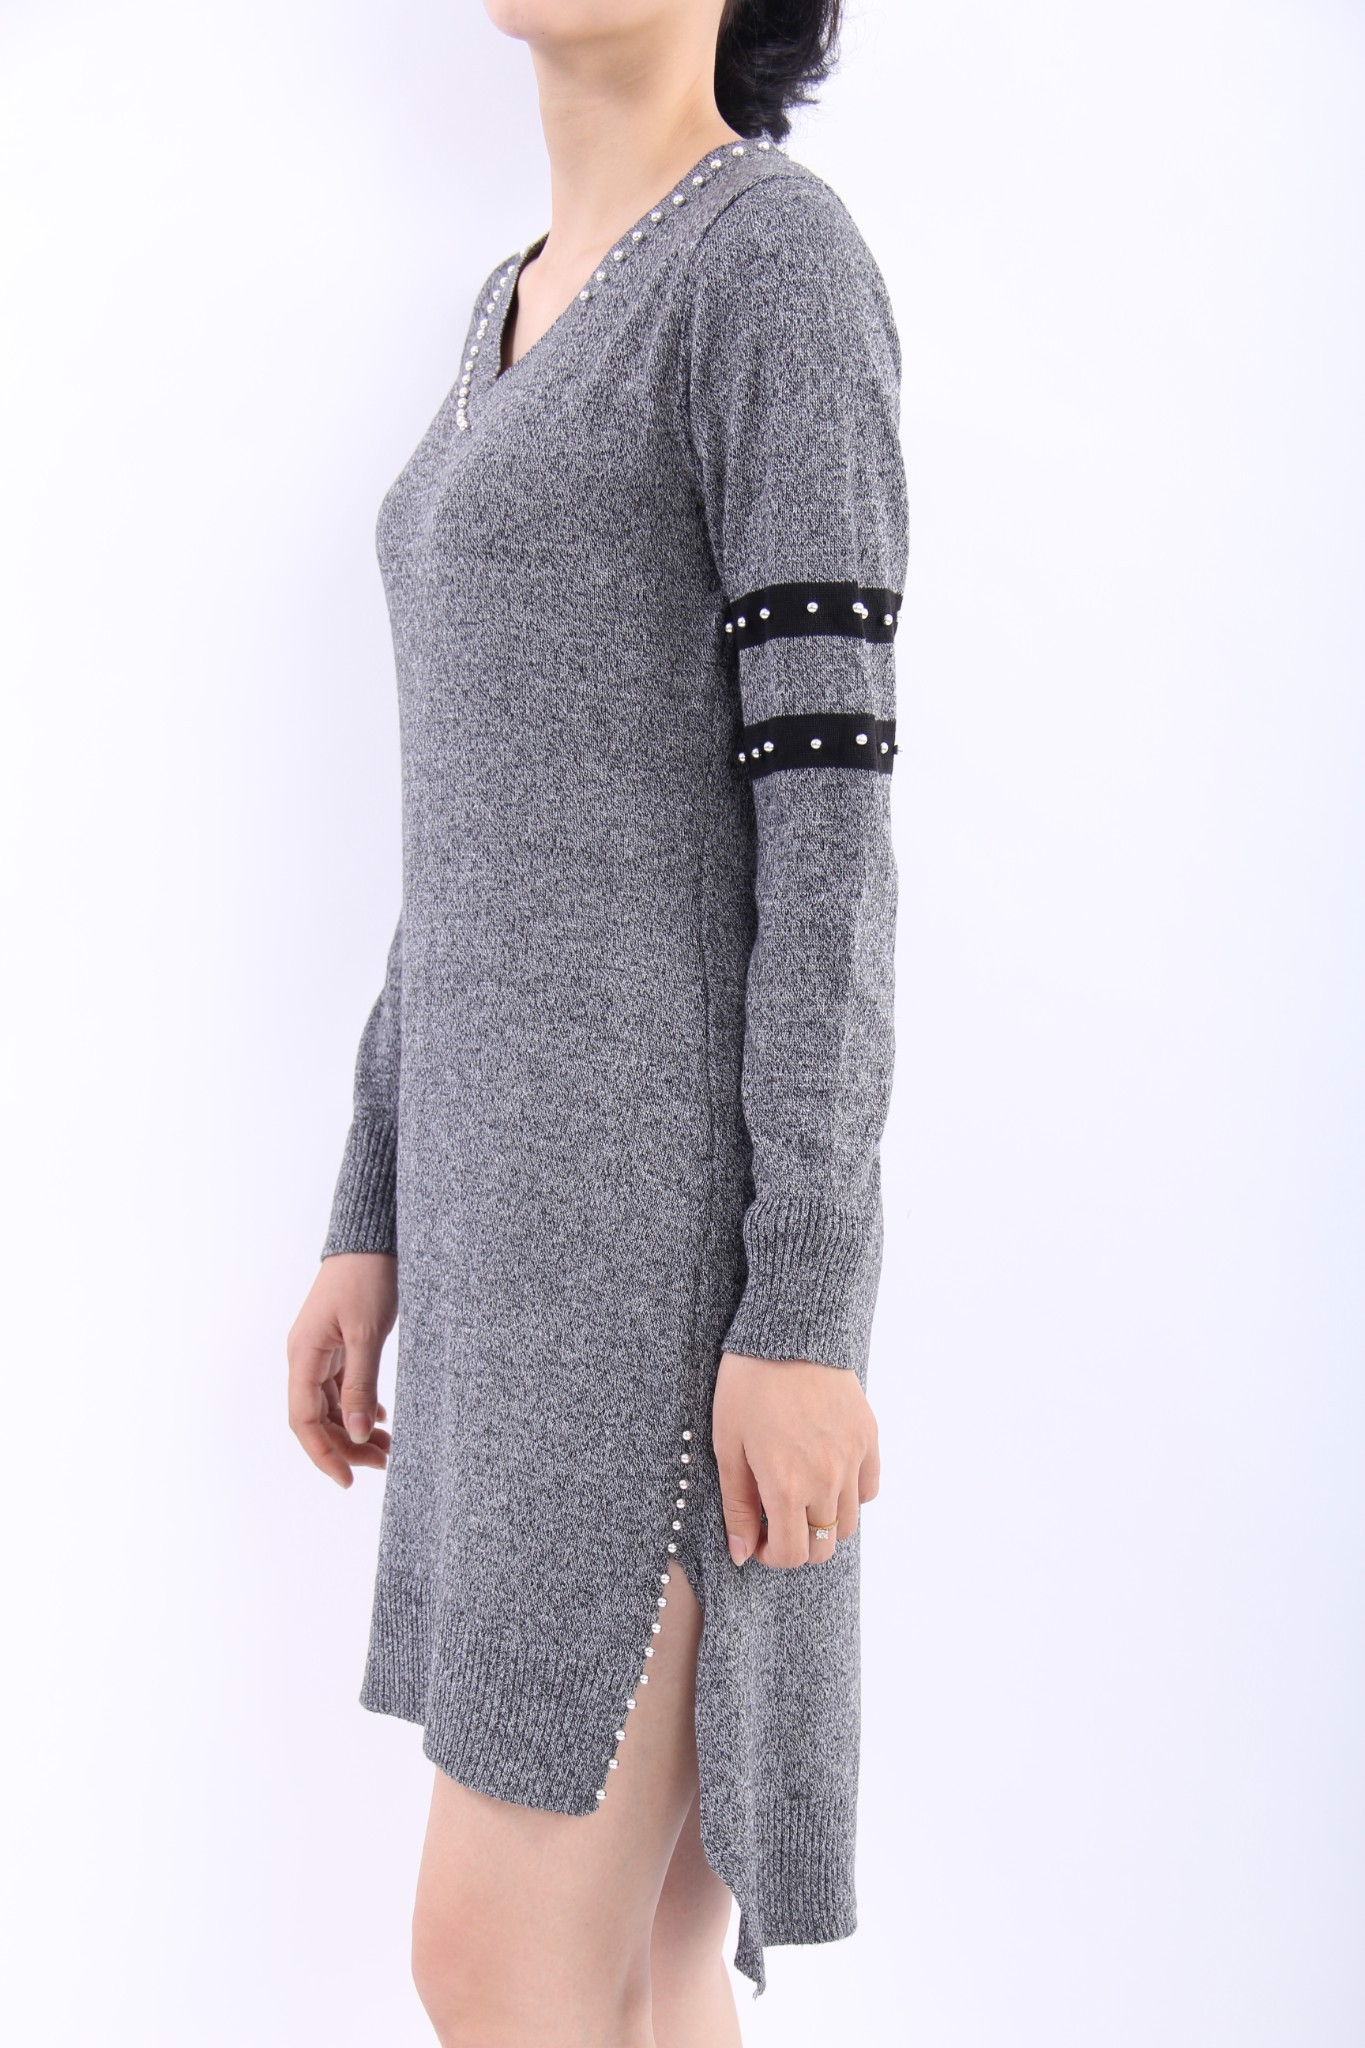 Pearls grey high-low shift dress